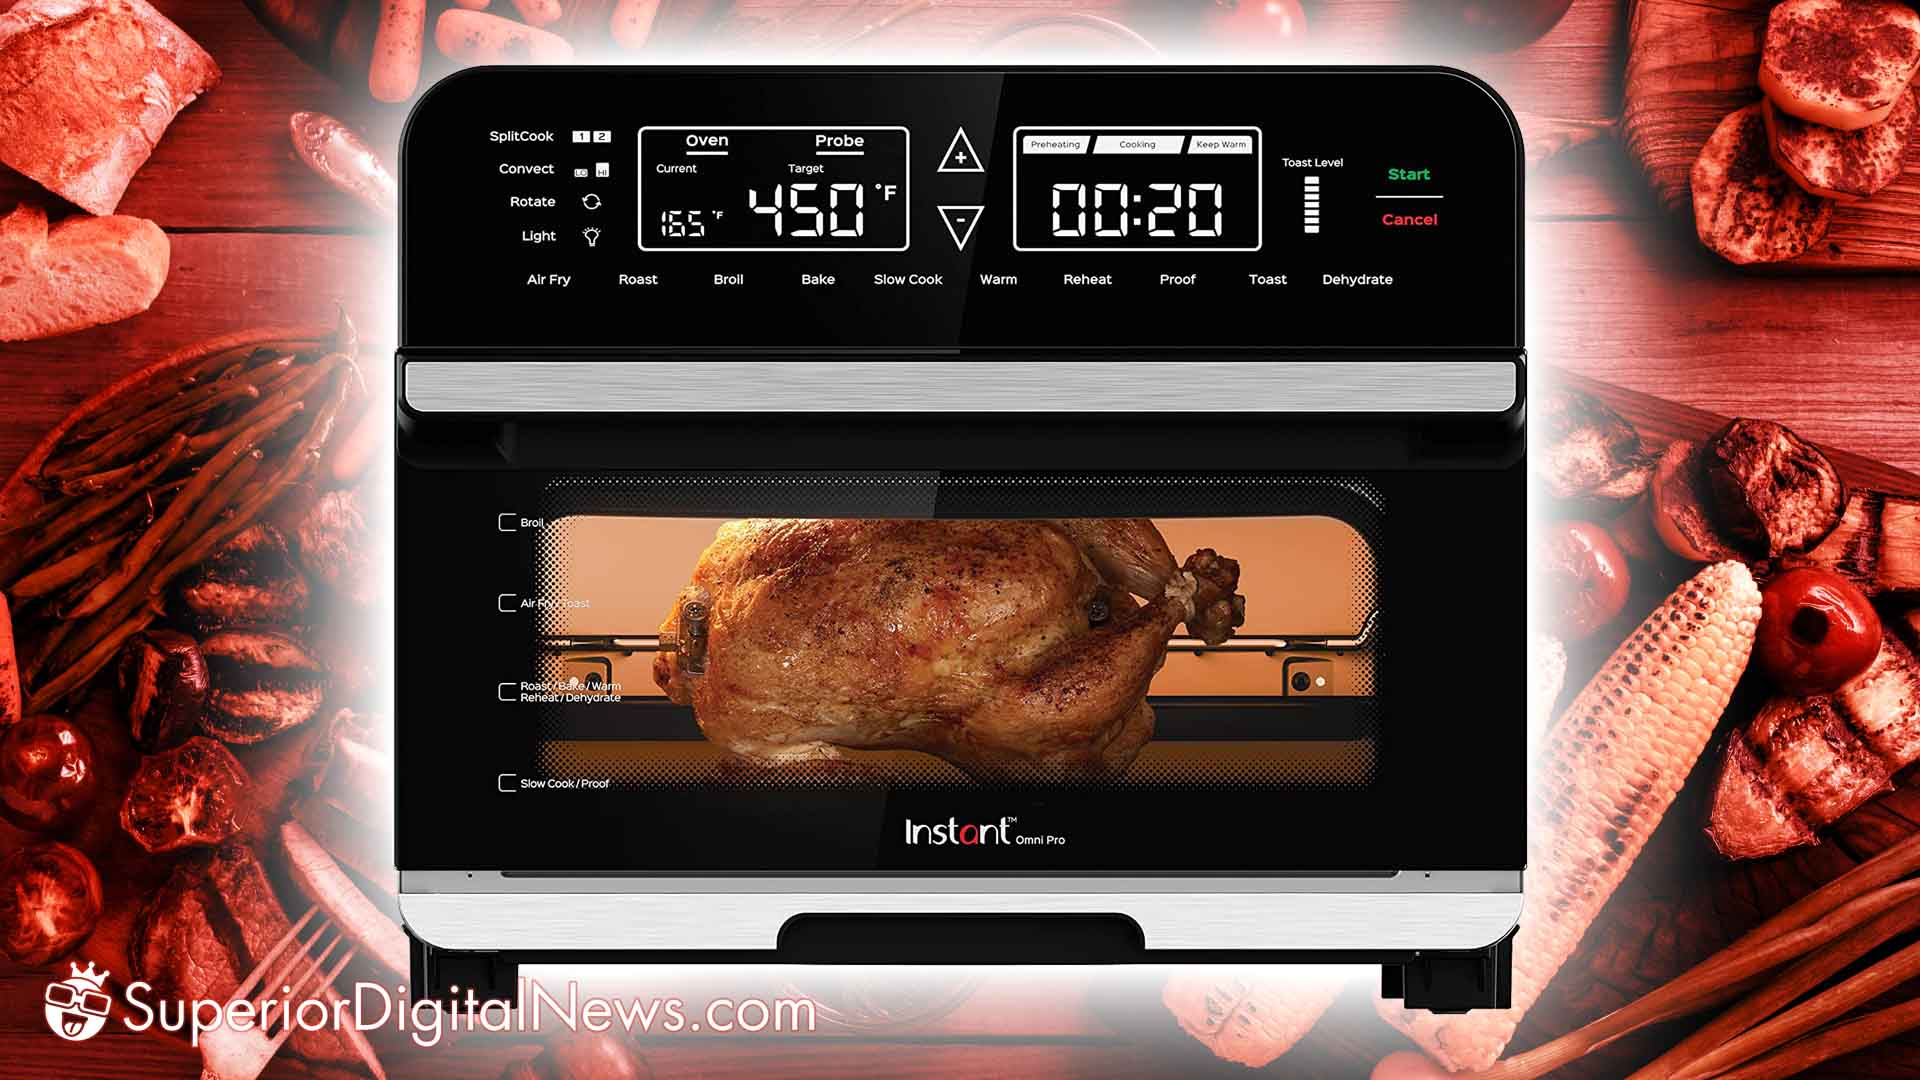 Instant Omni Pro 14-In-1 Convection Oven and Air Fryer